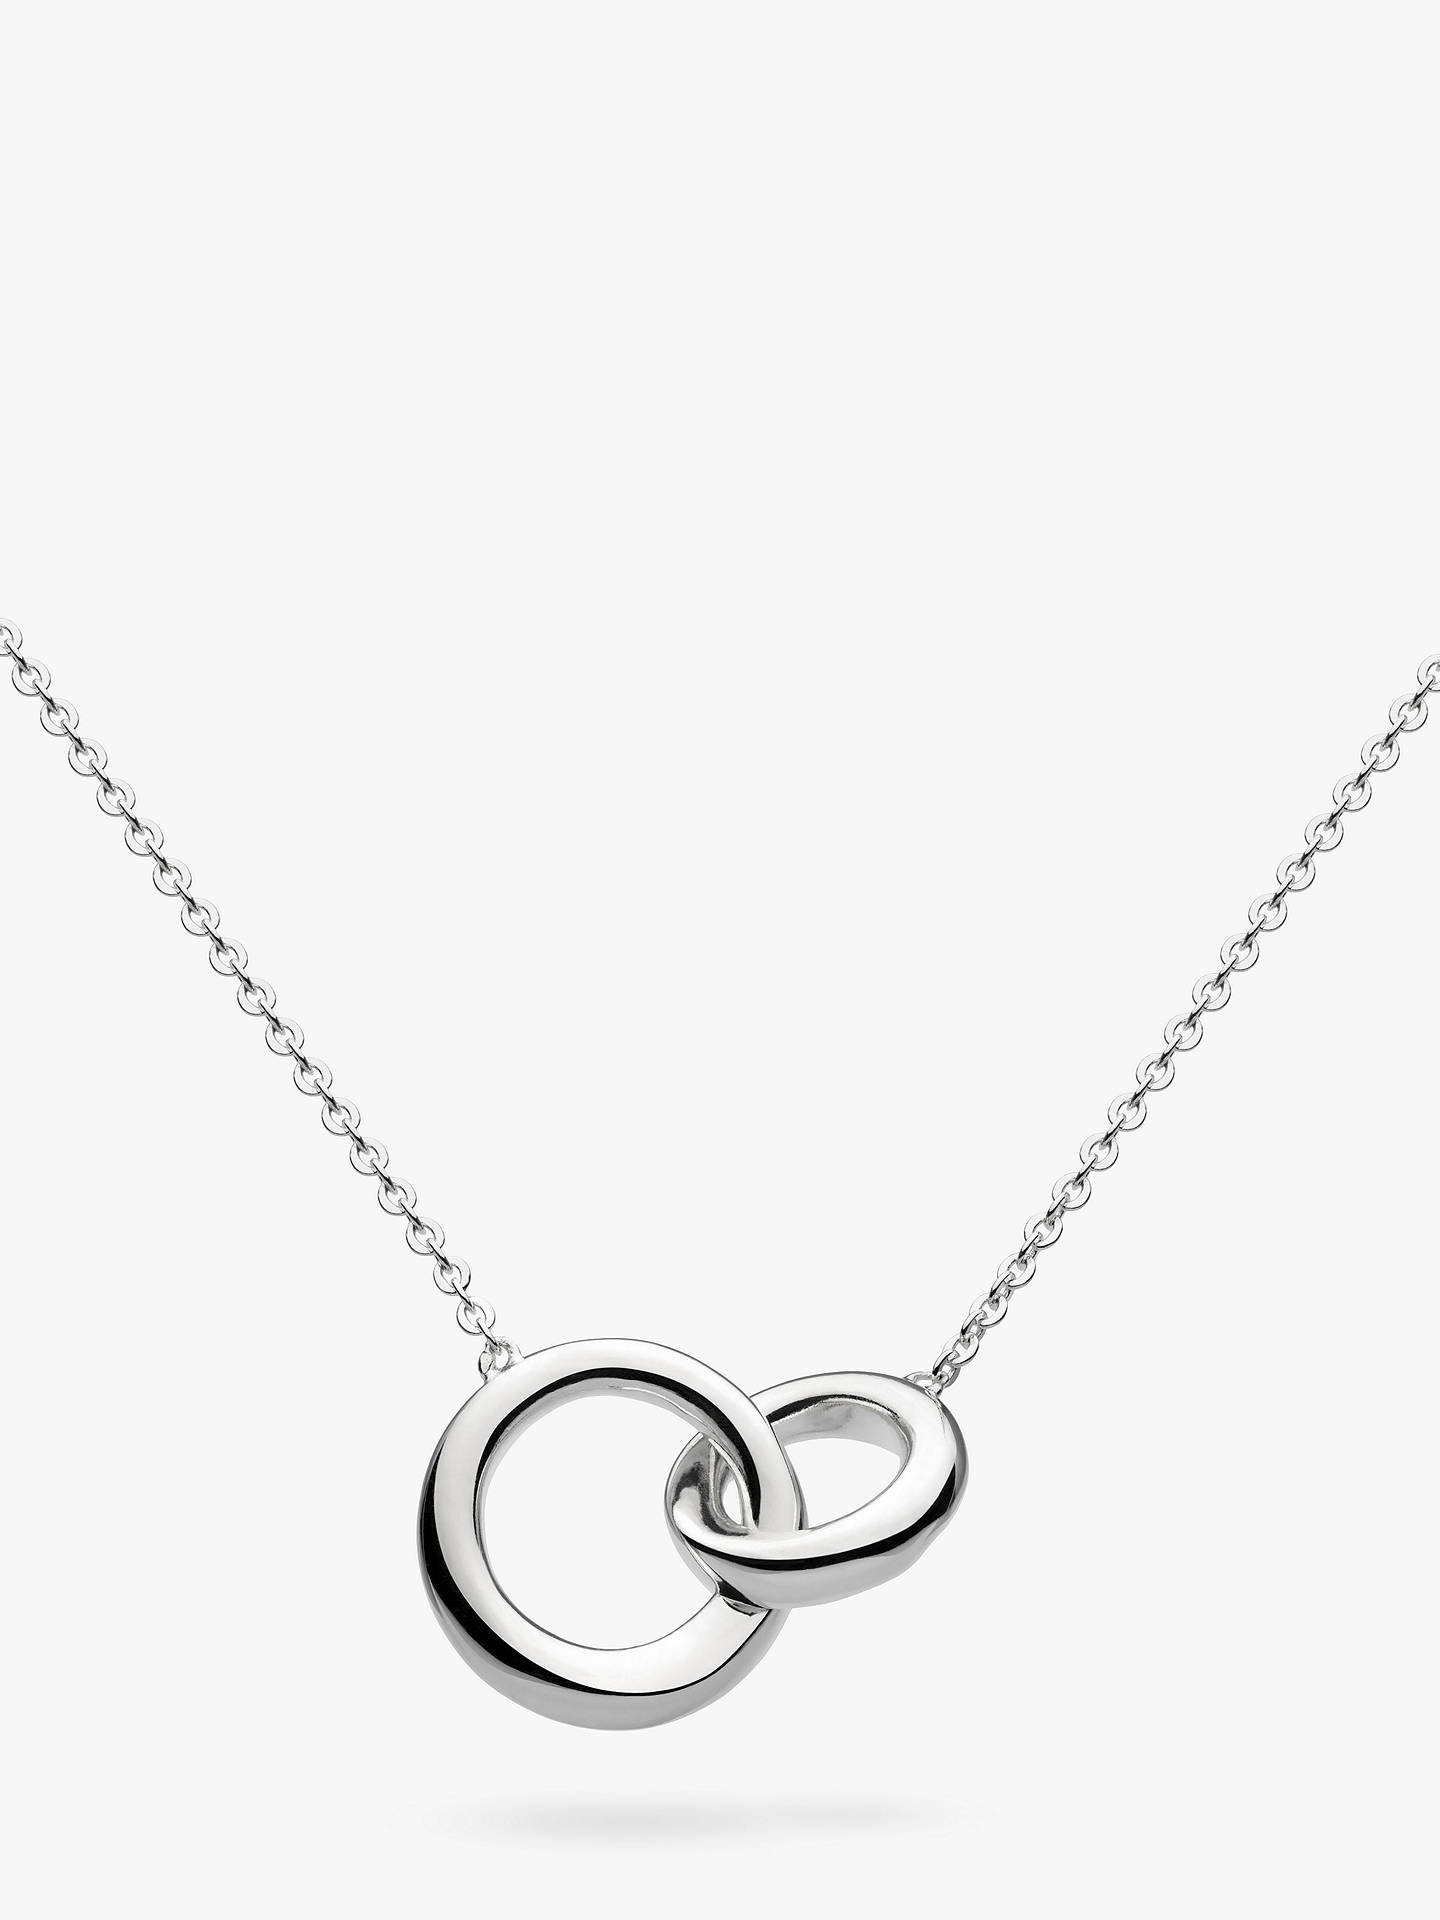 d821848cc Buy Kit Heath Bevel Curve Interlink Ring Pendant Necklace, Silver Online at  johnlewis.com ...